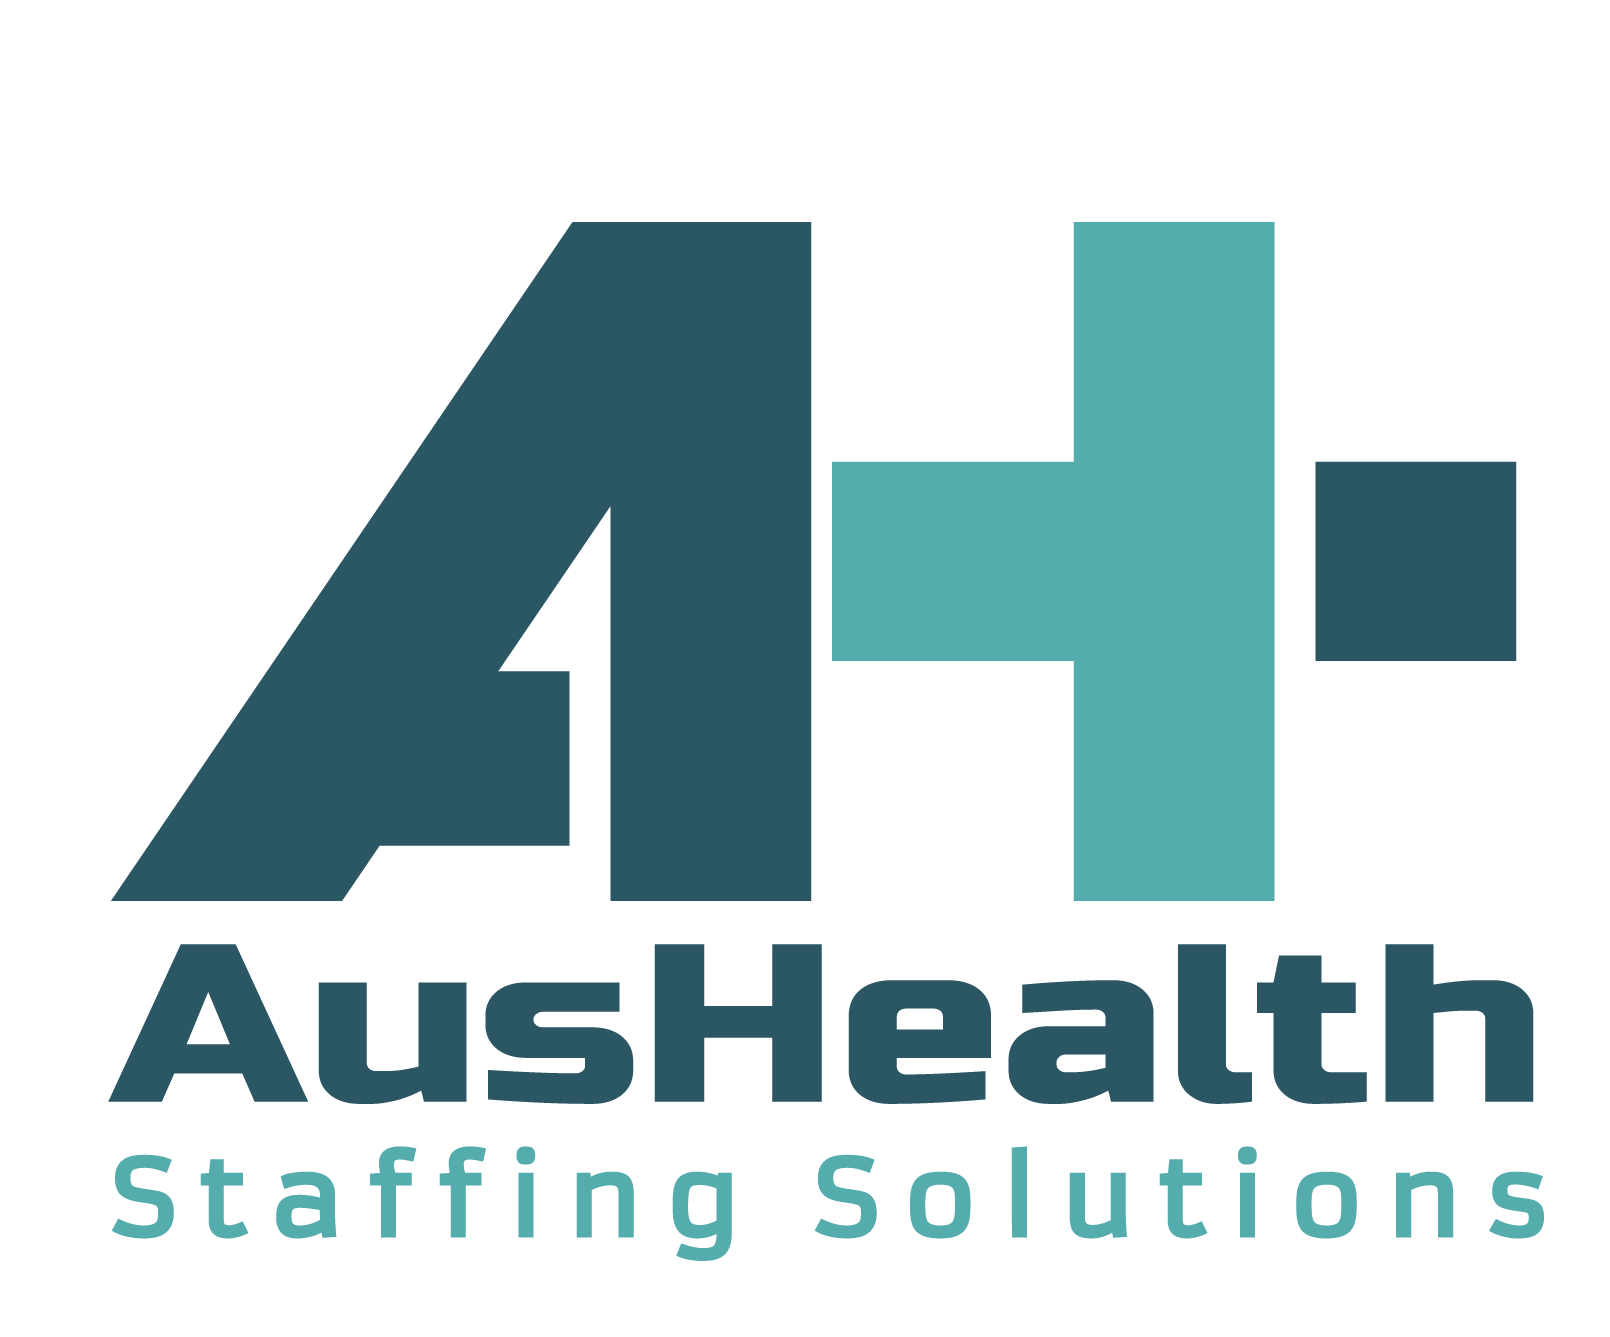 AusHealth Staffing Solutions